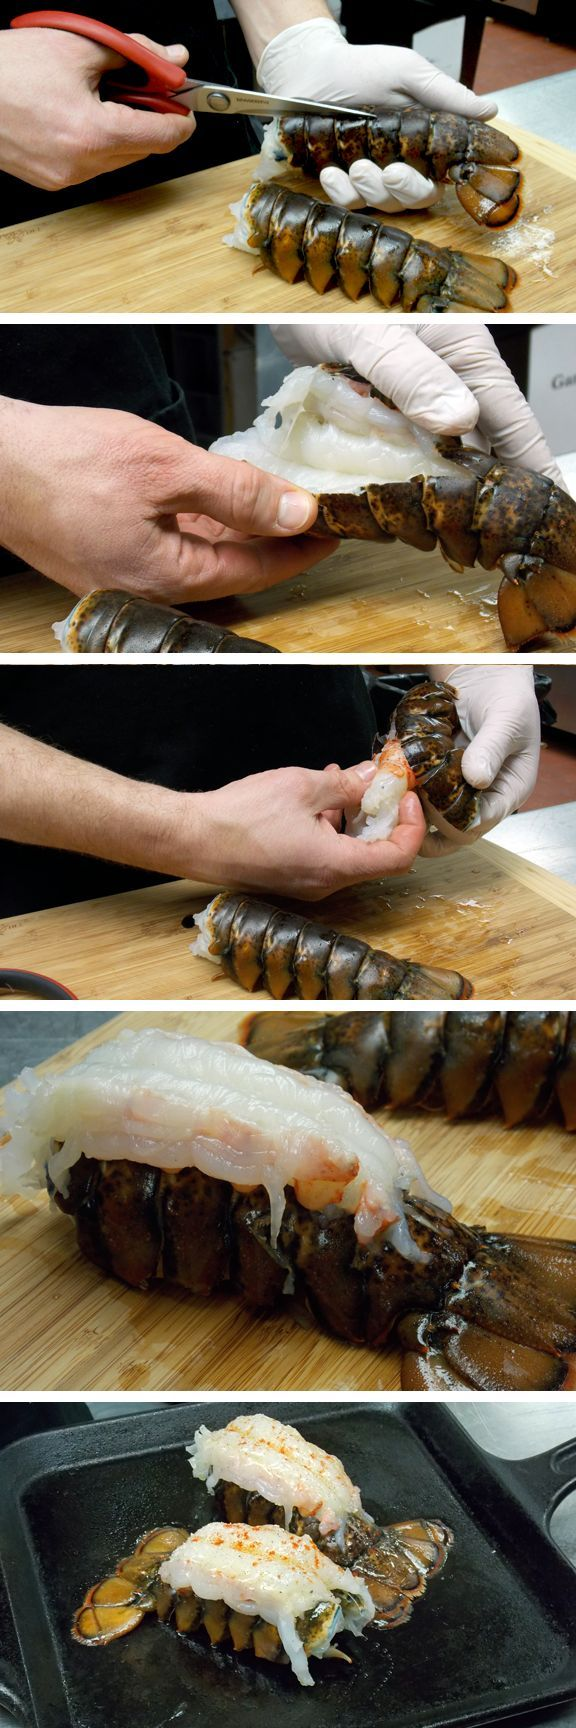 Feeling like a little surf and turf? Here's how to make #steak & lobster tail, with step-by-step instructions!